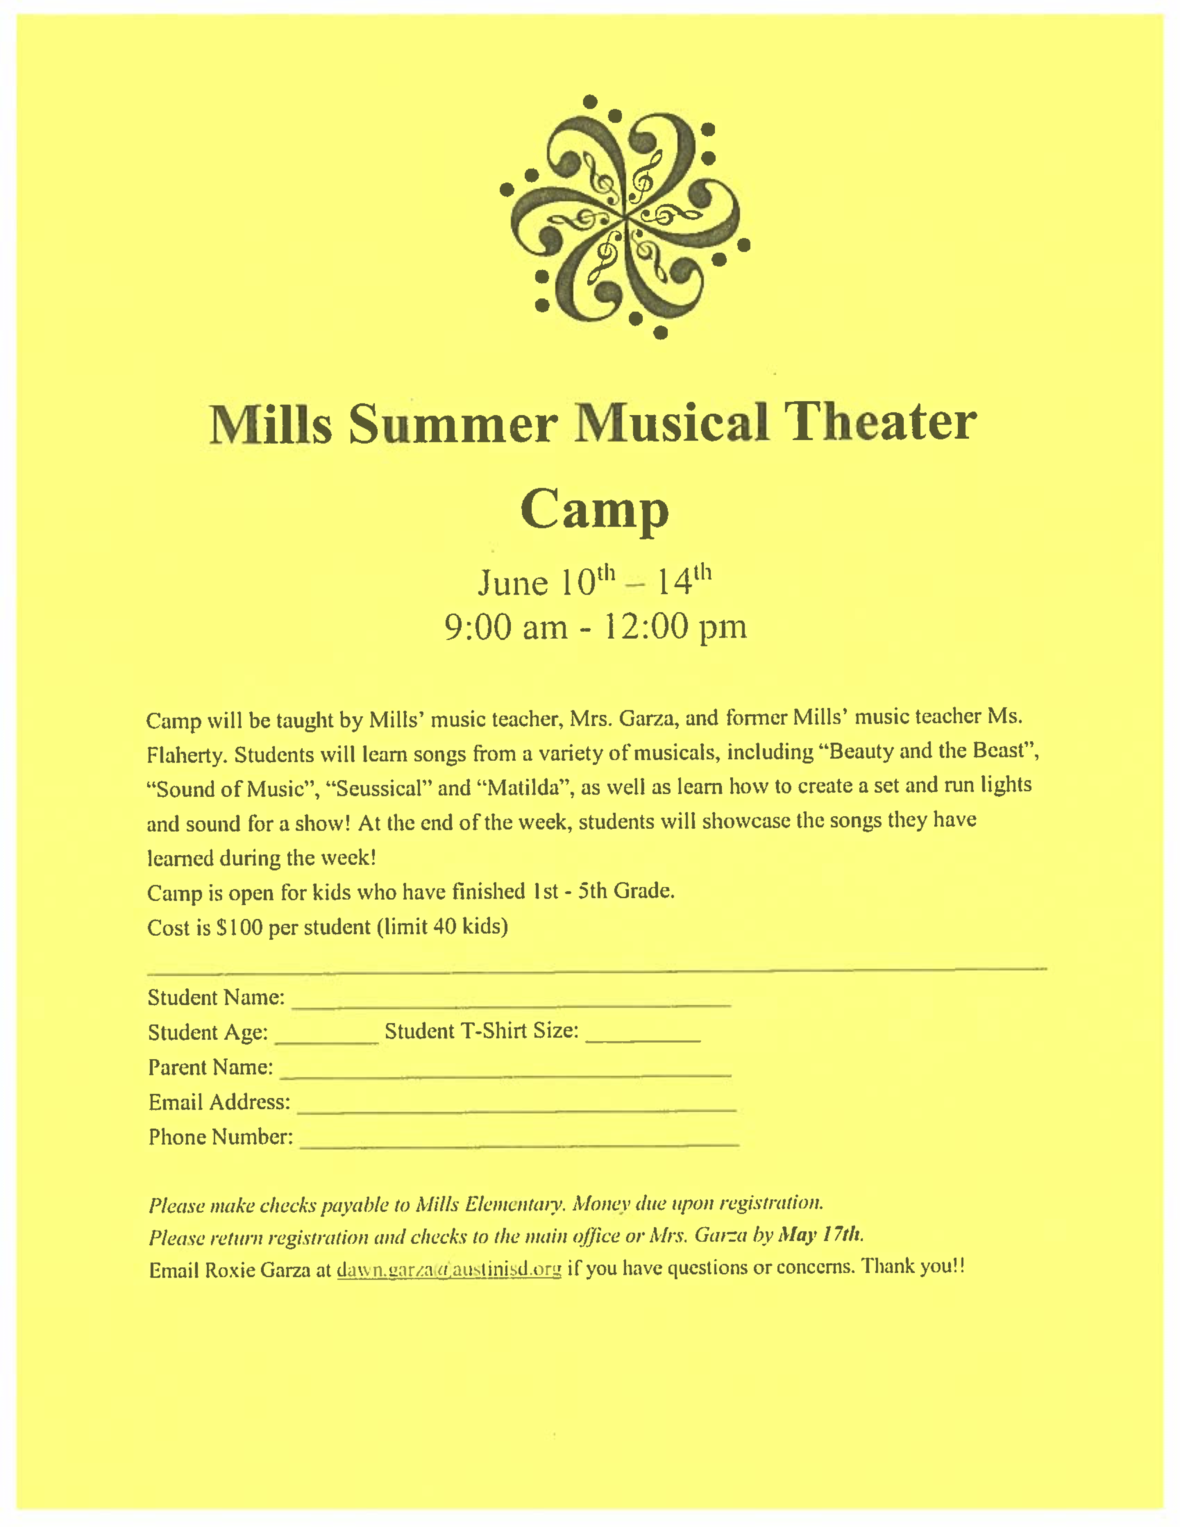 Mills Summer Musical Theater Camp